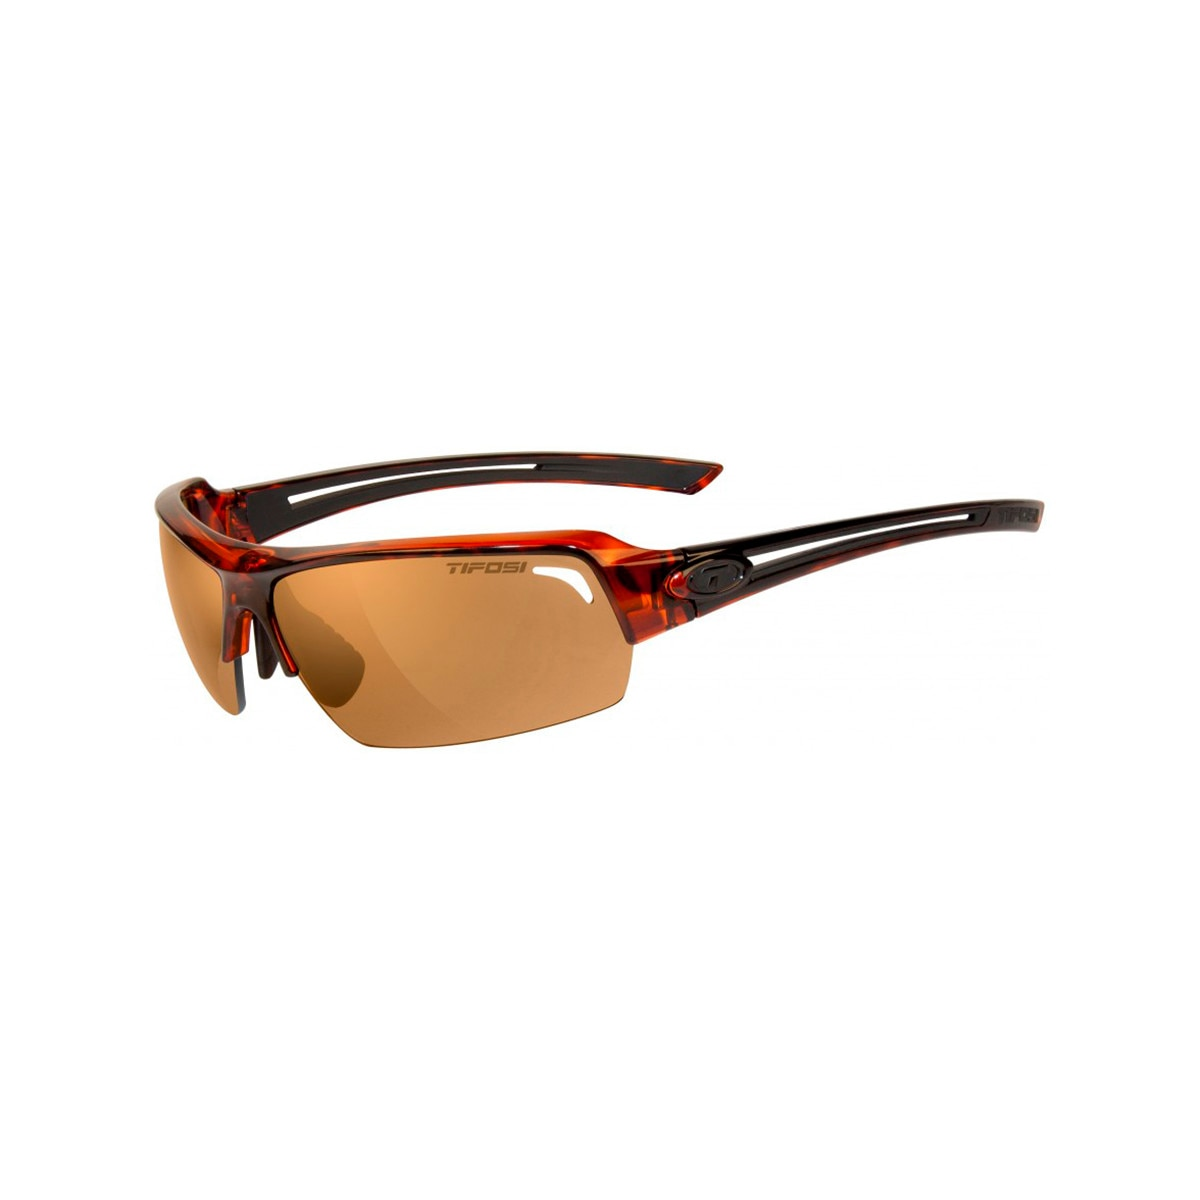 Tifosi Optics Just Sunglasses Men's